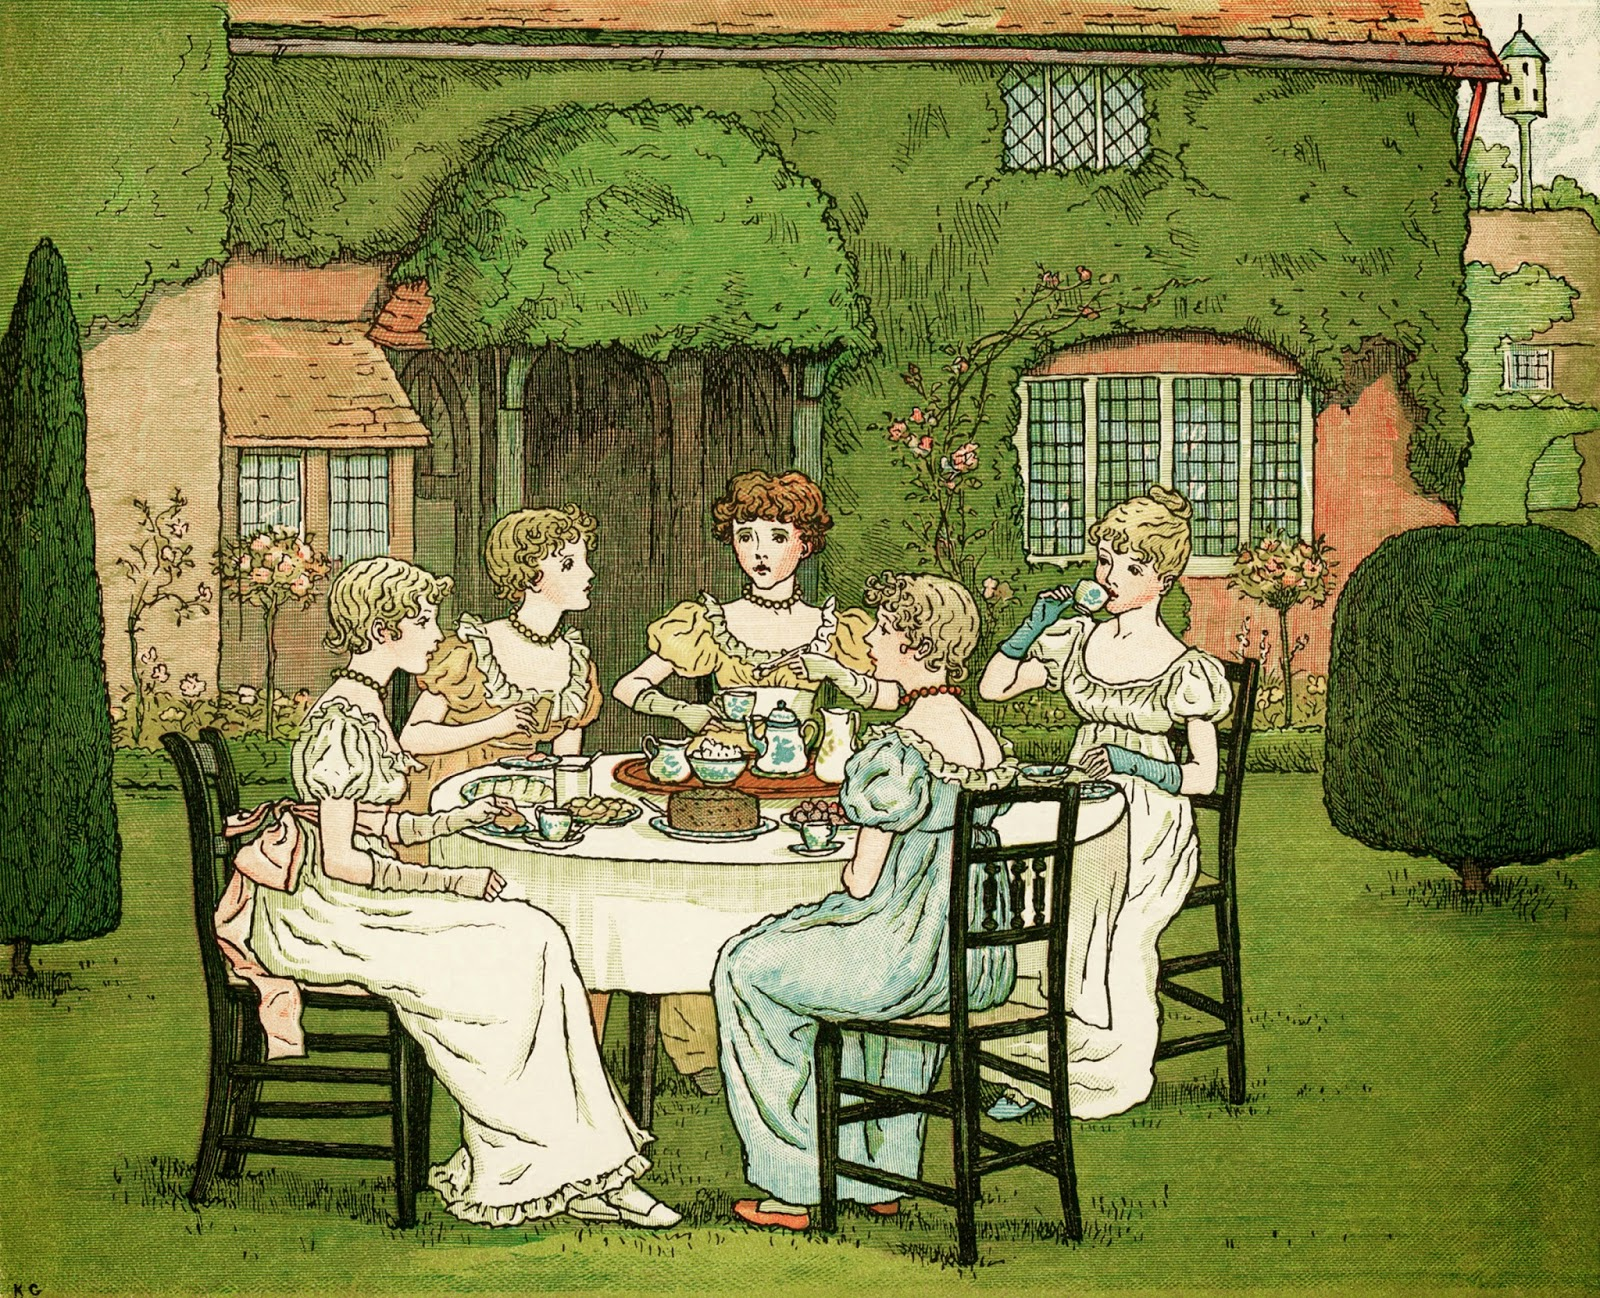 http://olddesignshop.com/2014/03/the-tea-party-by-kate-greenaway-free-vintage-storybook-image/